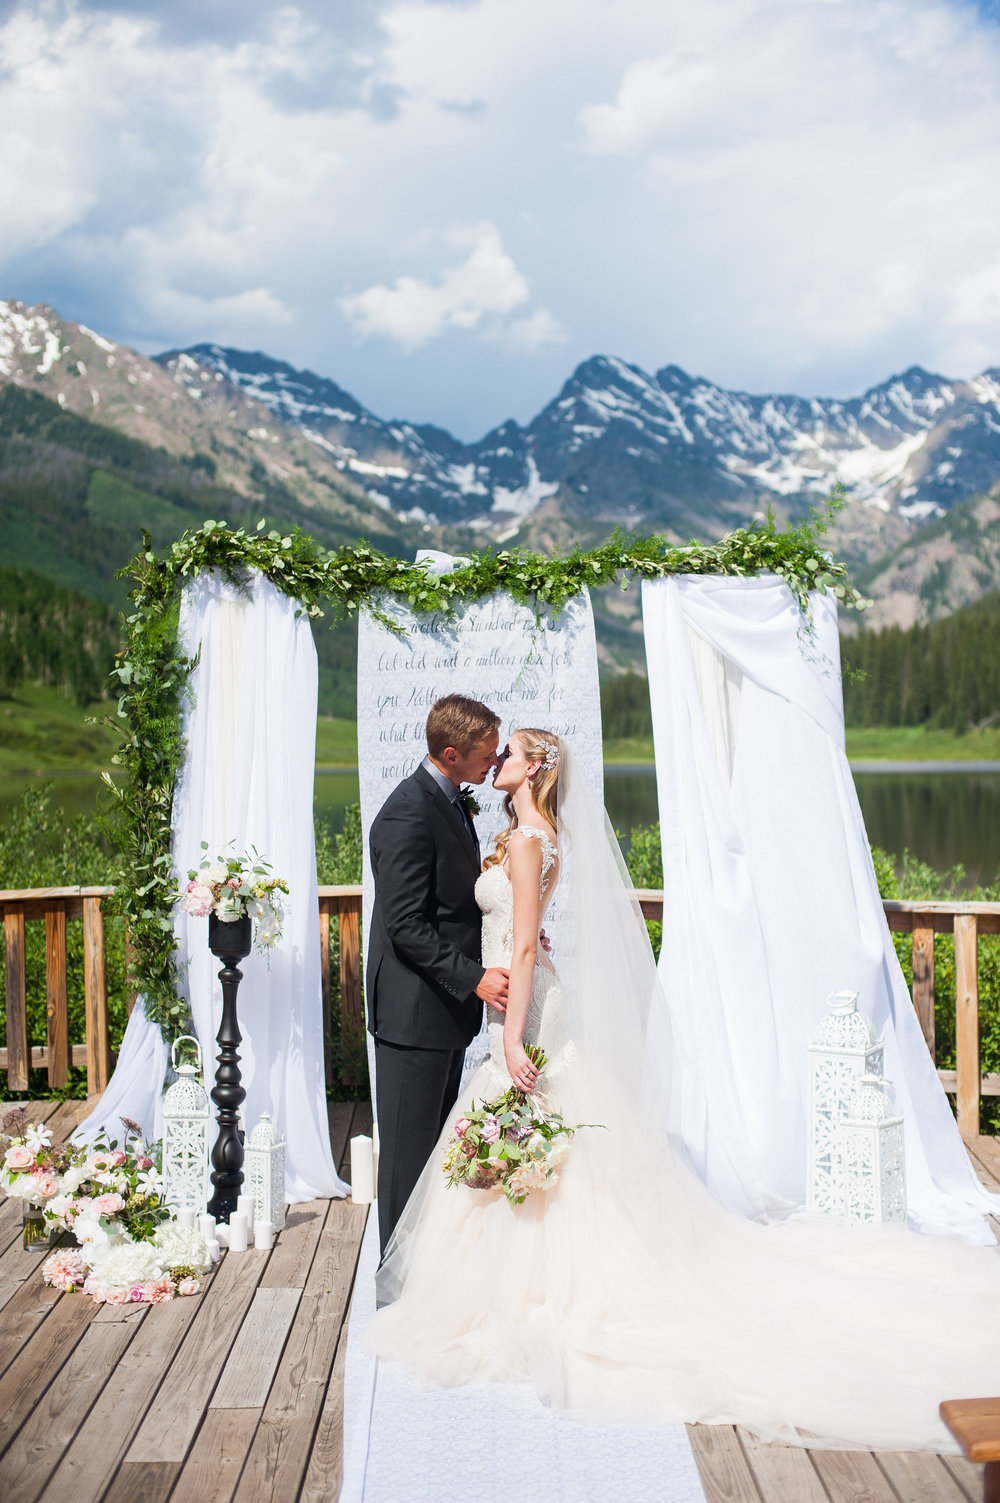 Flowers by Lace and Lilies, Marys Lake lodge, mountain wedding, colorado wedding, ceremony garland, bridal bouquet, ceremony fabric, piney river ranch, vail wedding